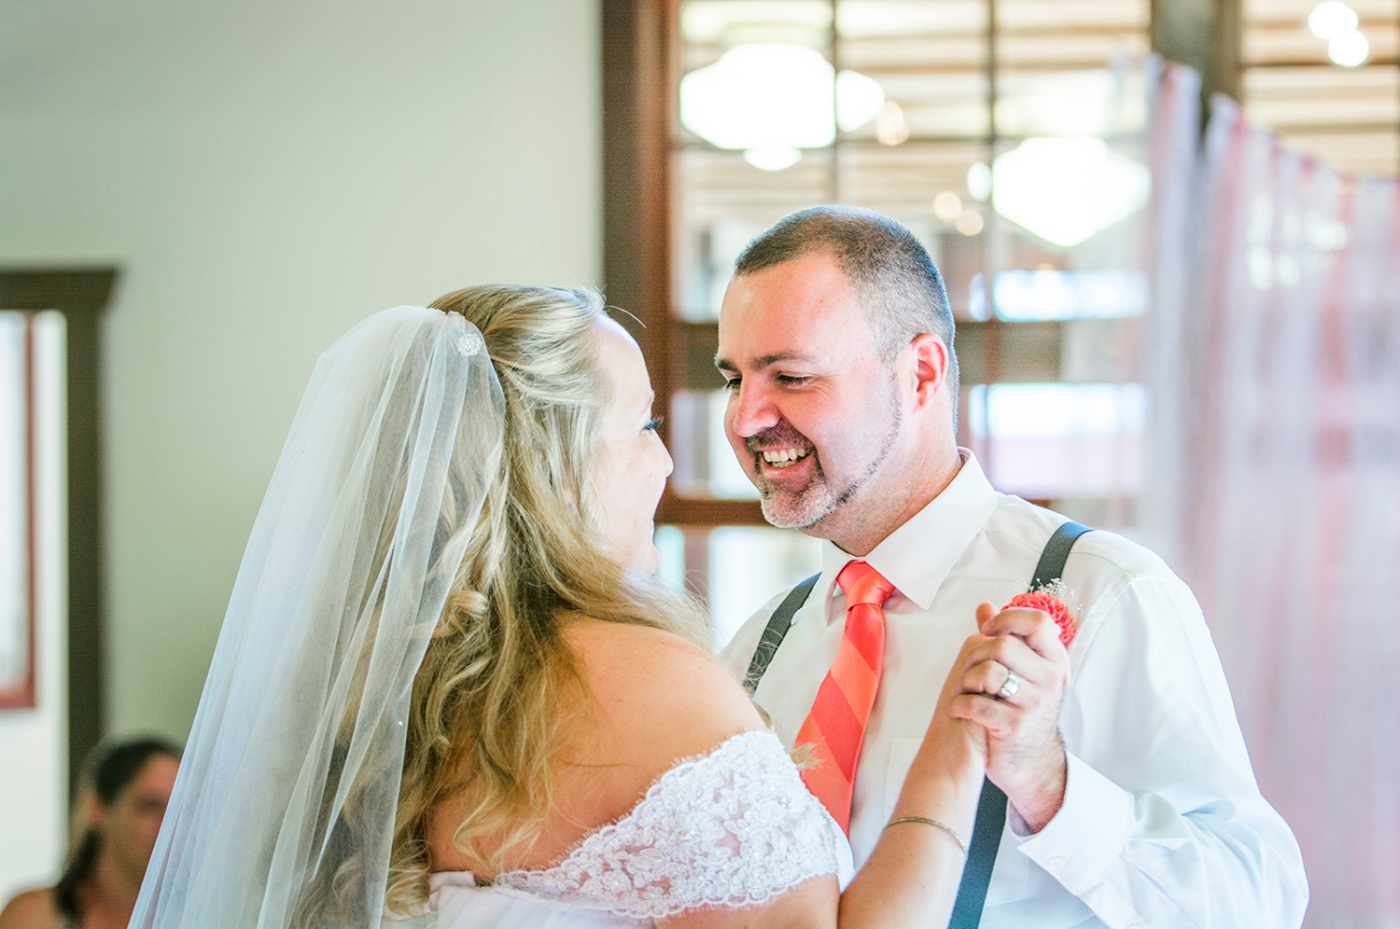 Jane_Speleers_Seattle_photography_Katie_and_Steve_2016_Des_Moines_Marina_Wedding_JS7_9387